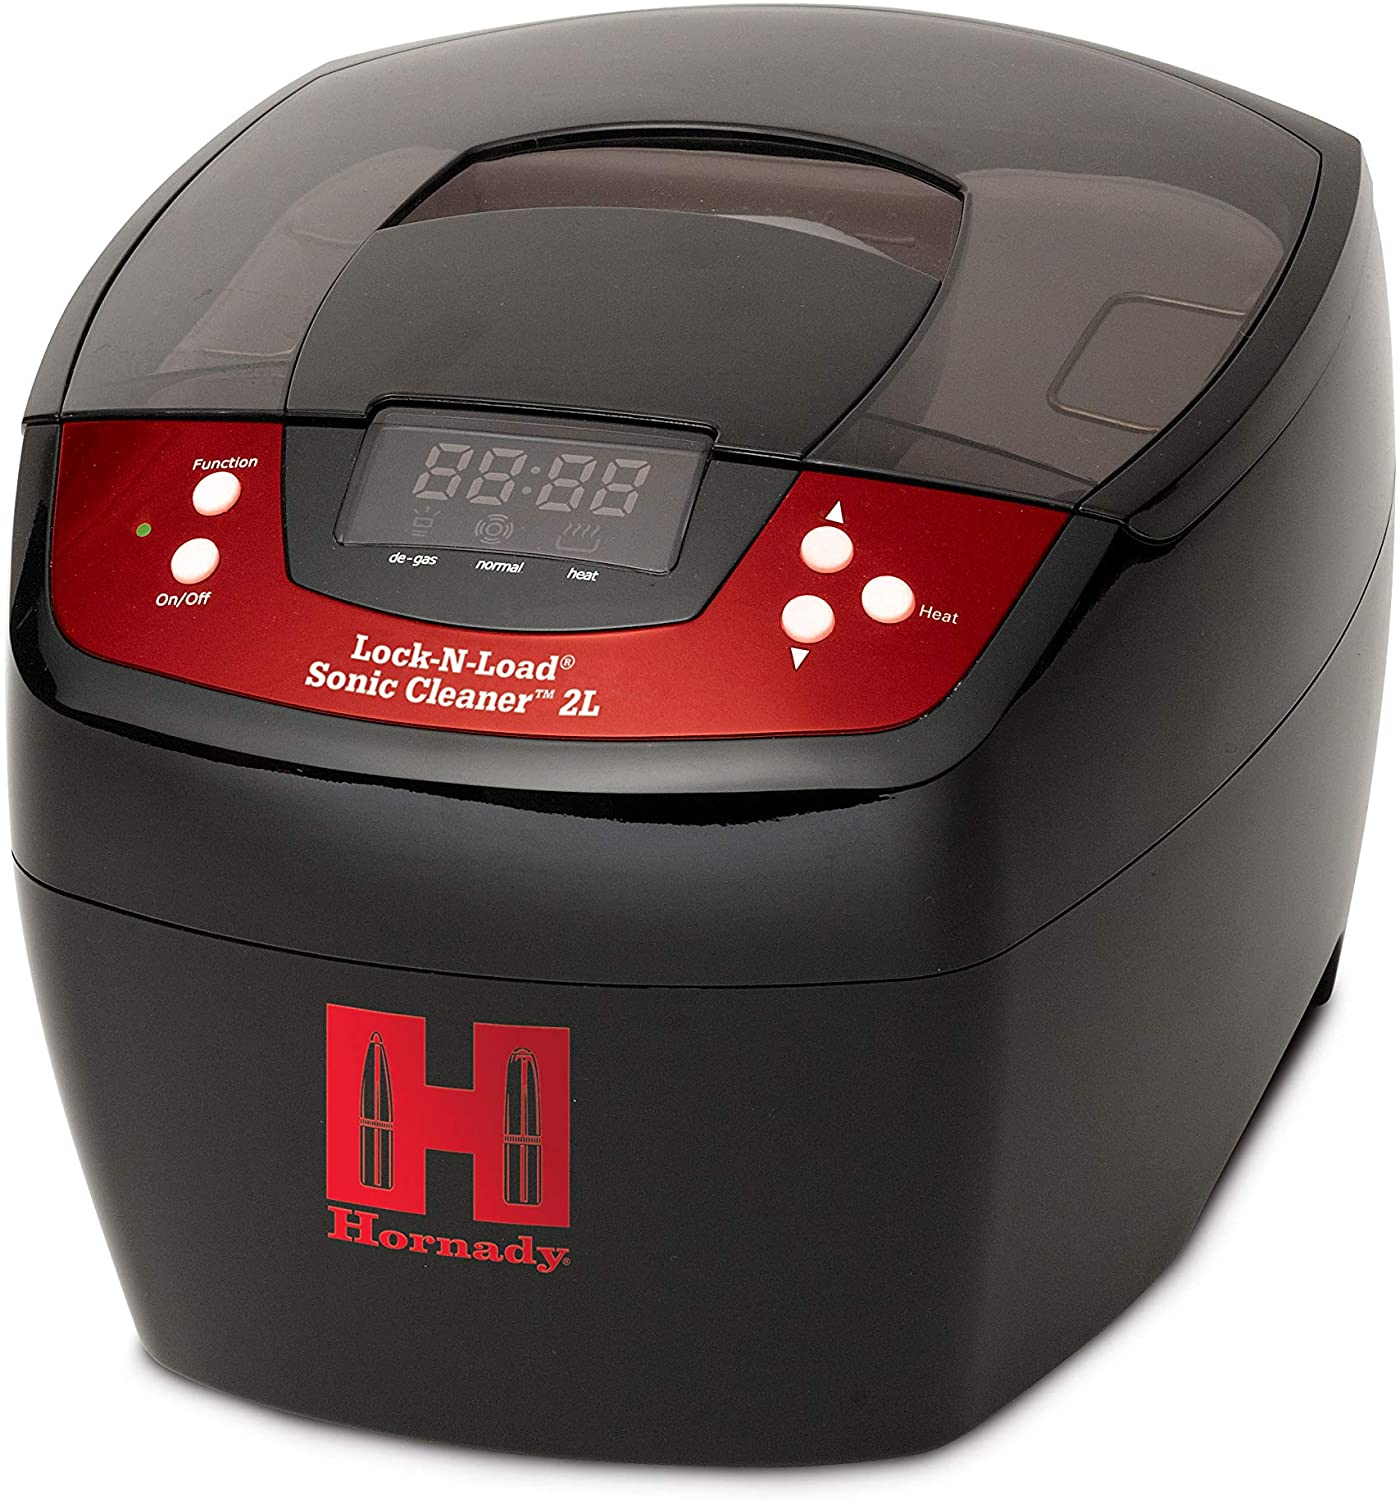 Hornady Lock-N-Load 2L Ultrasonic Cleaner